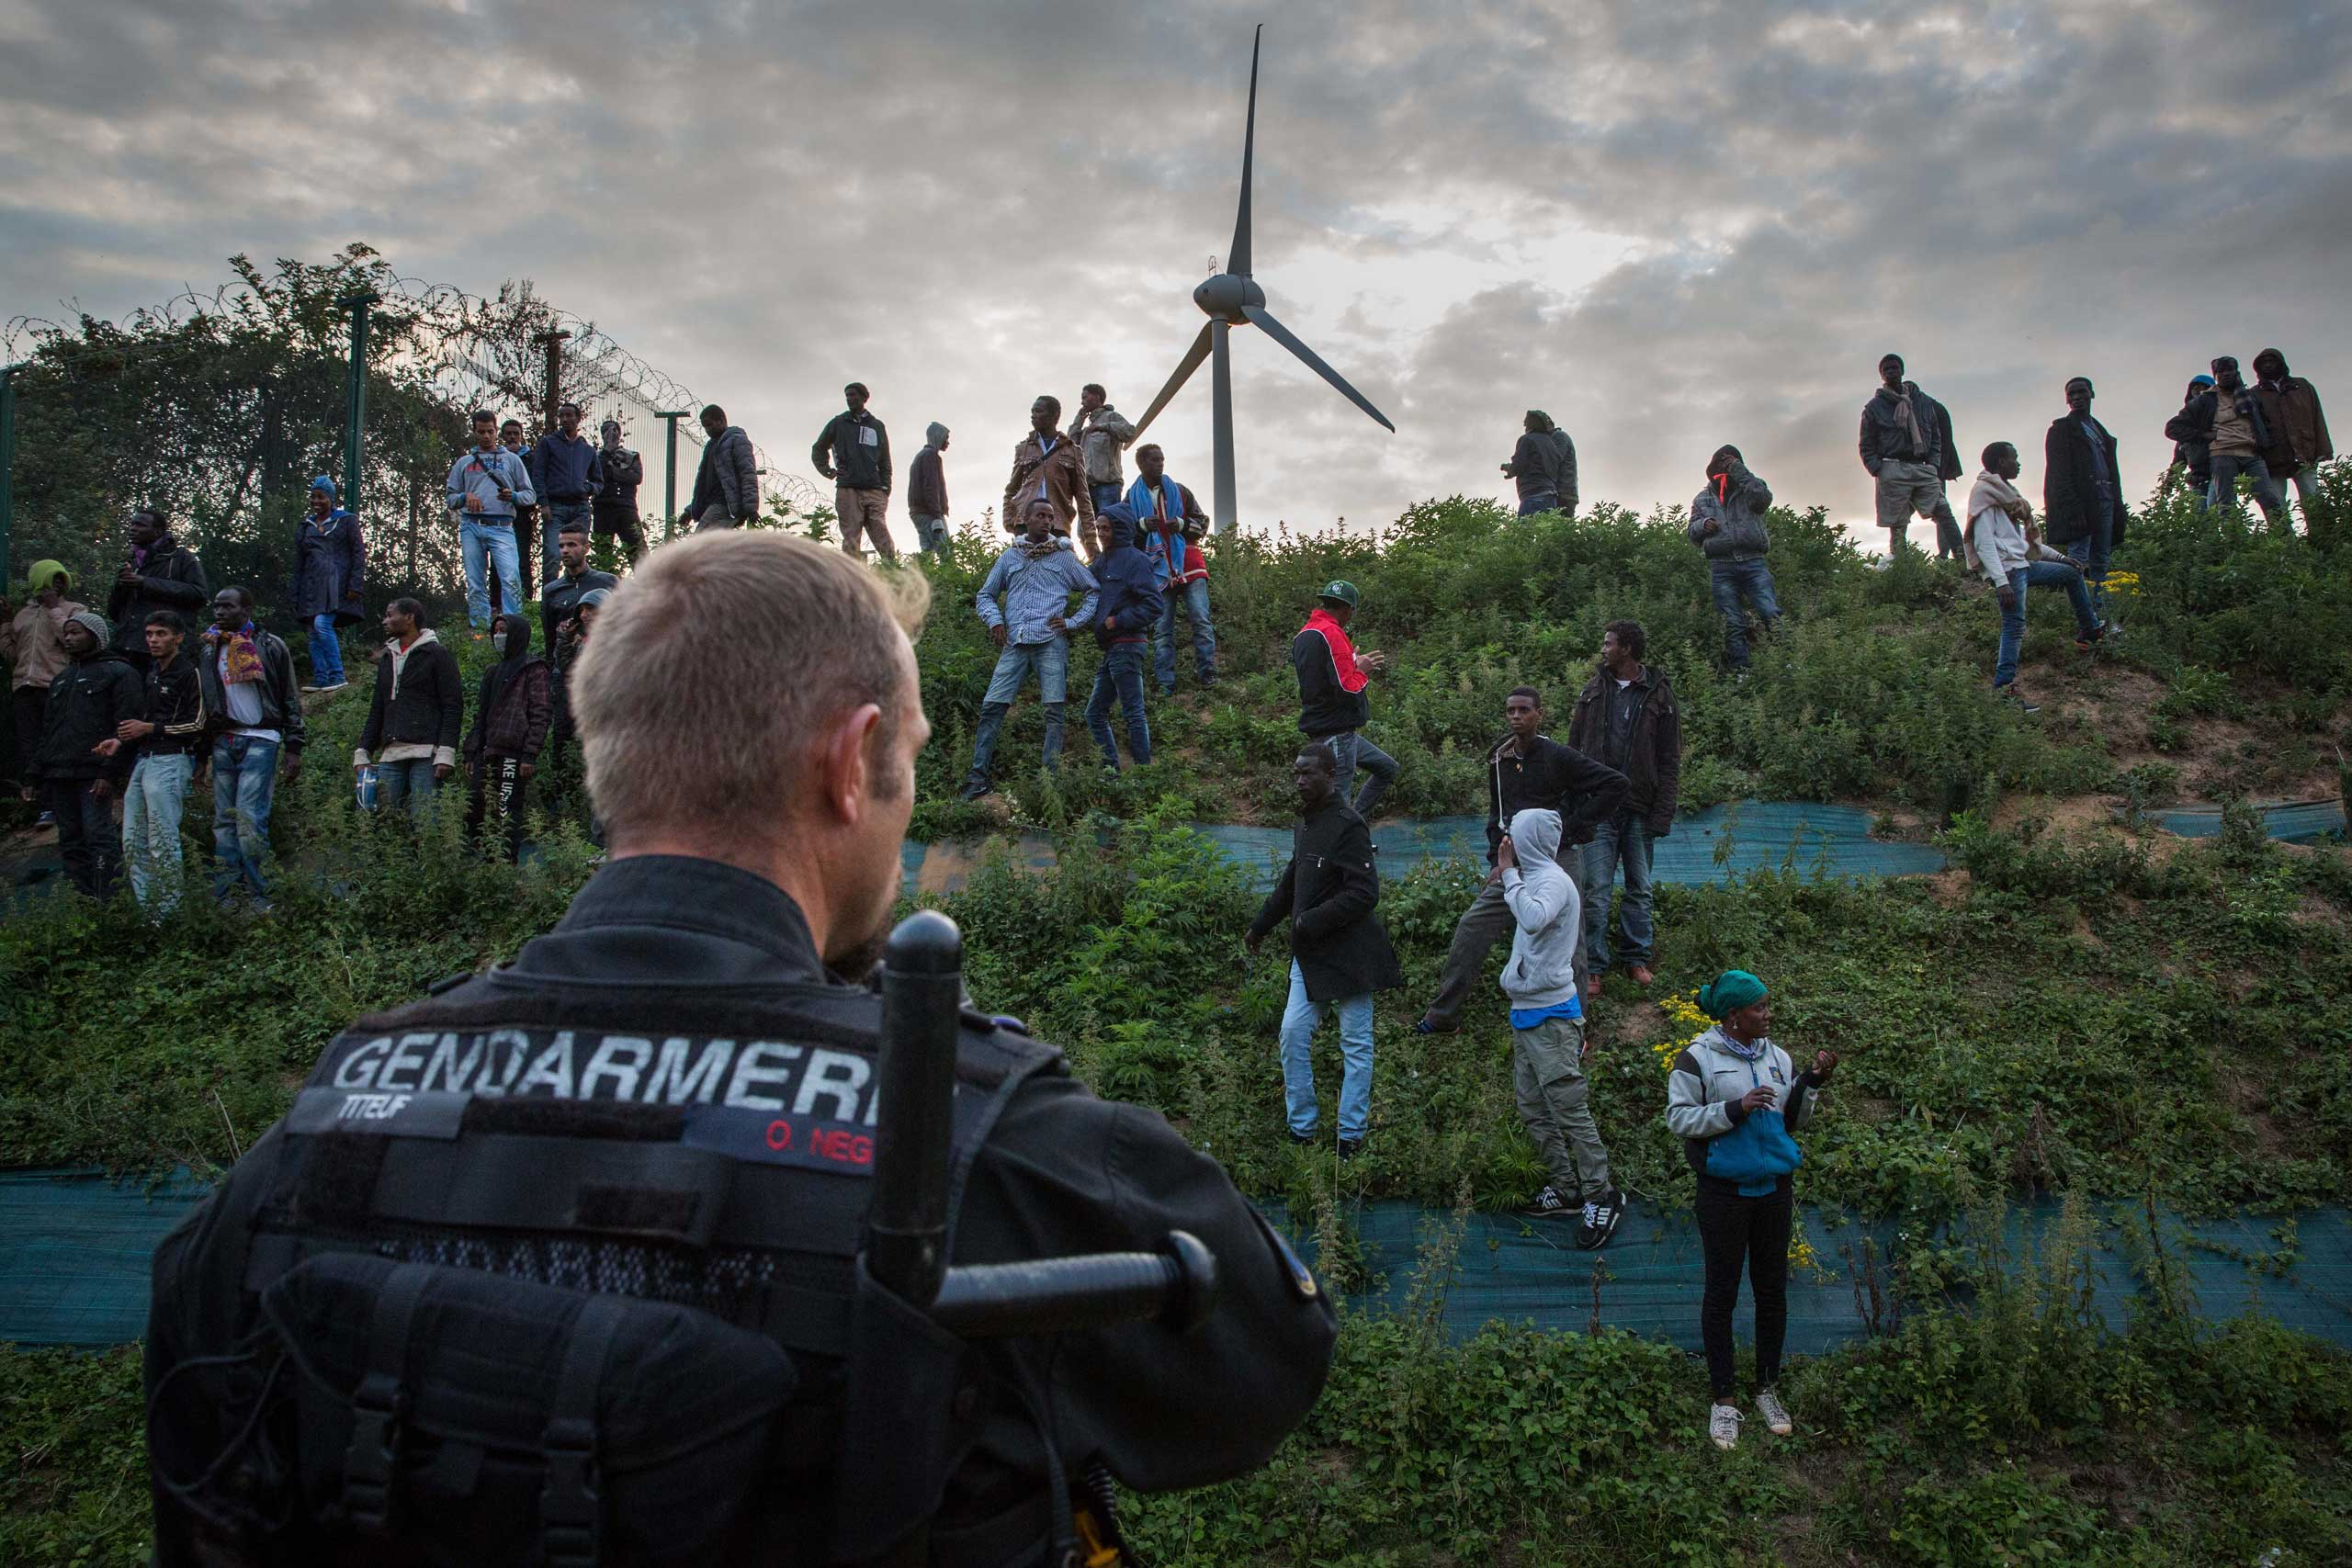 Gendarmerie attempt to prevent people from entering the Eurotunnel terminal in Coquelles in Calais, France. Hundreds of migrants were trying to enter the Channel Tunnel and onto trains heading to the United Kingdom. July 30, 2015.